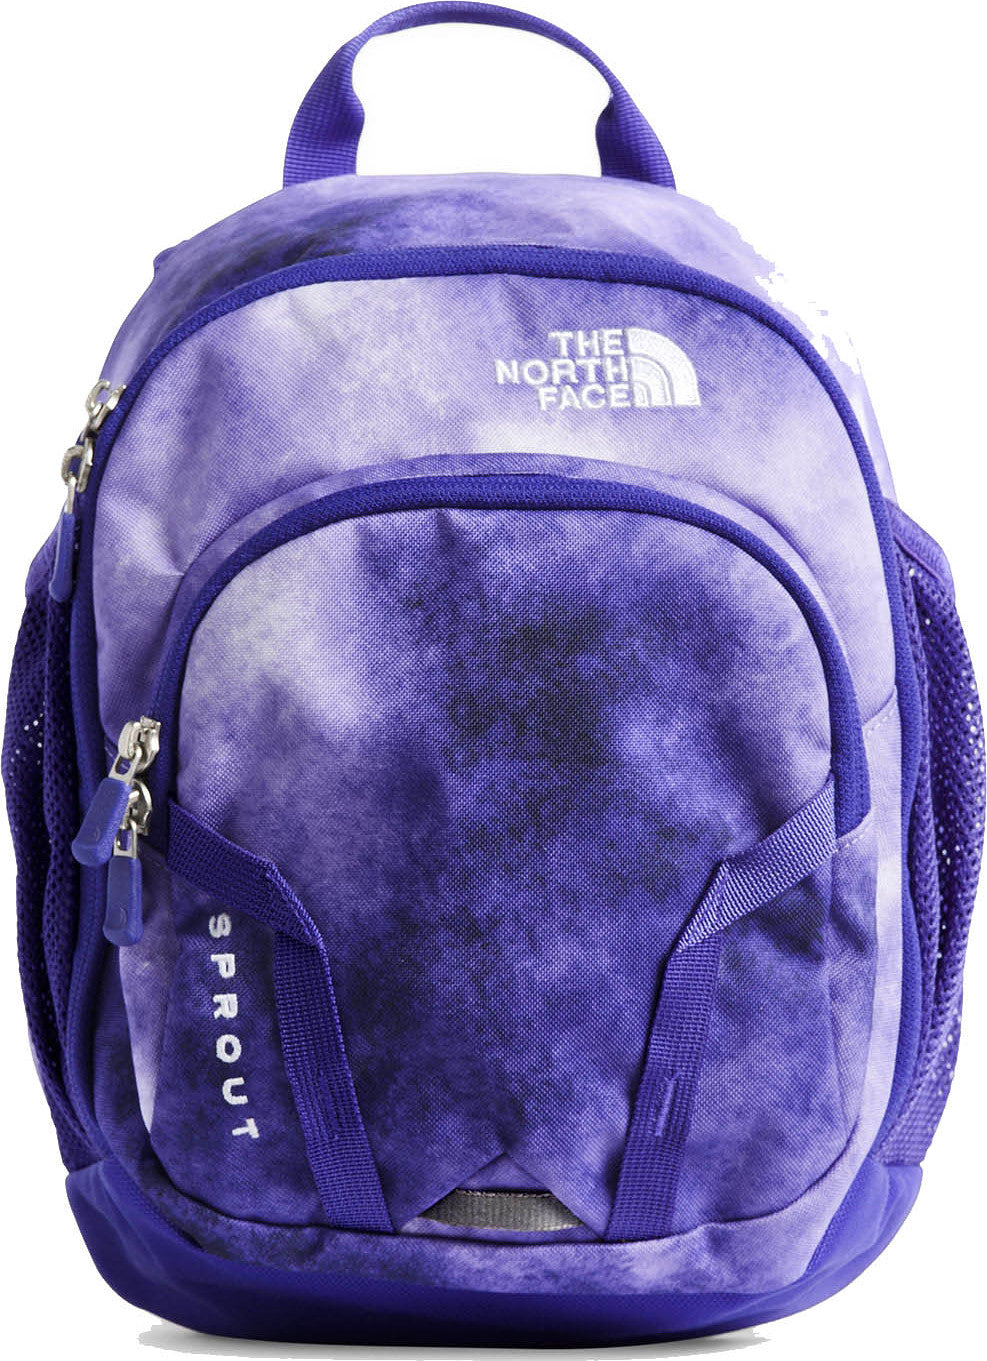 6d4e4591e6 Sprout 10 L Backpack - Youth Dahlia Purple Cloud Print - Deep Blue ...